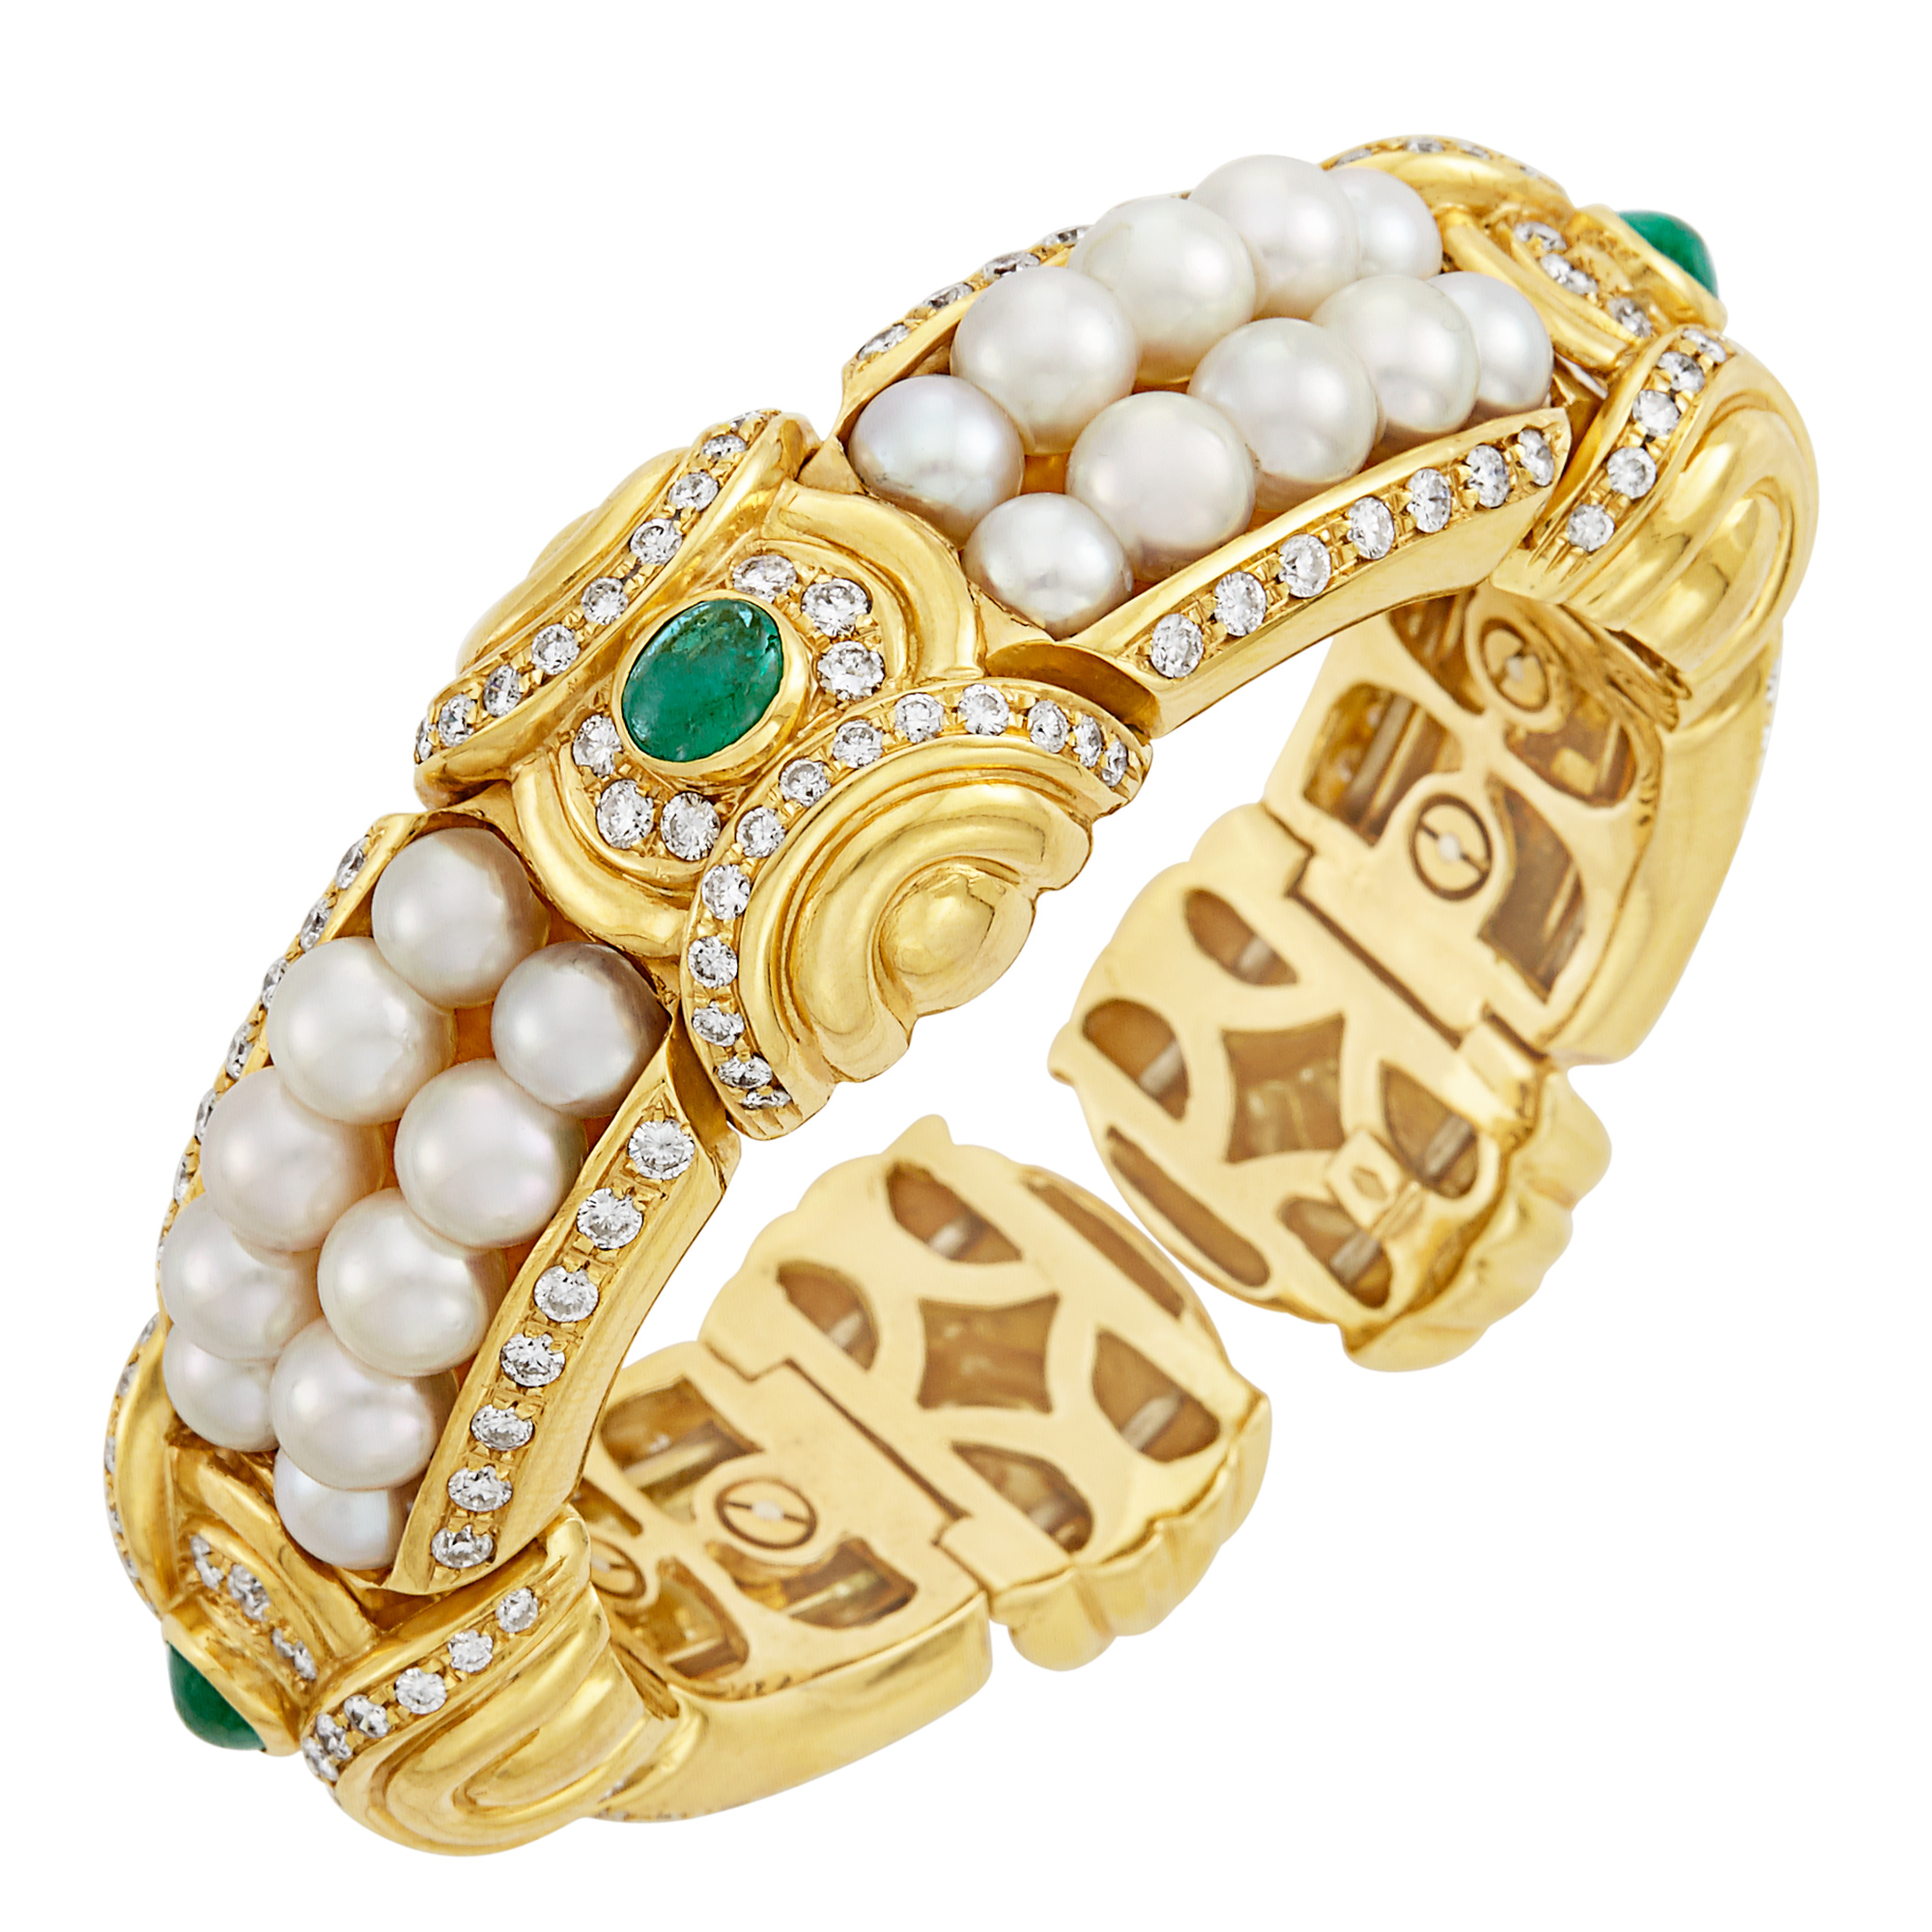 Lot image - Gold, Cultured Pearl, Cabochon Emerald and Diamond Bangle Bracelet